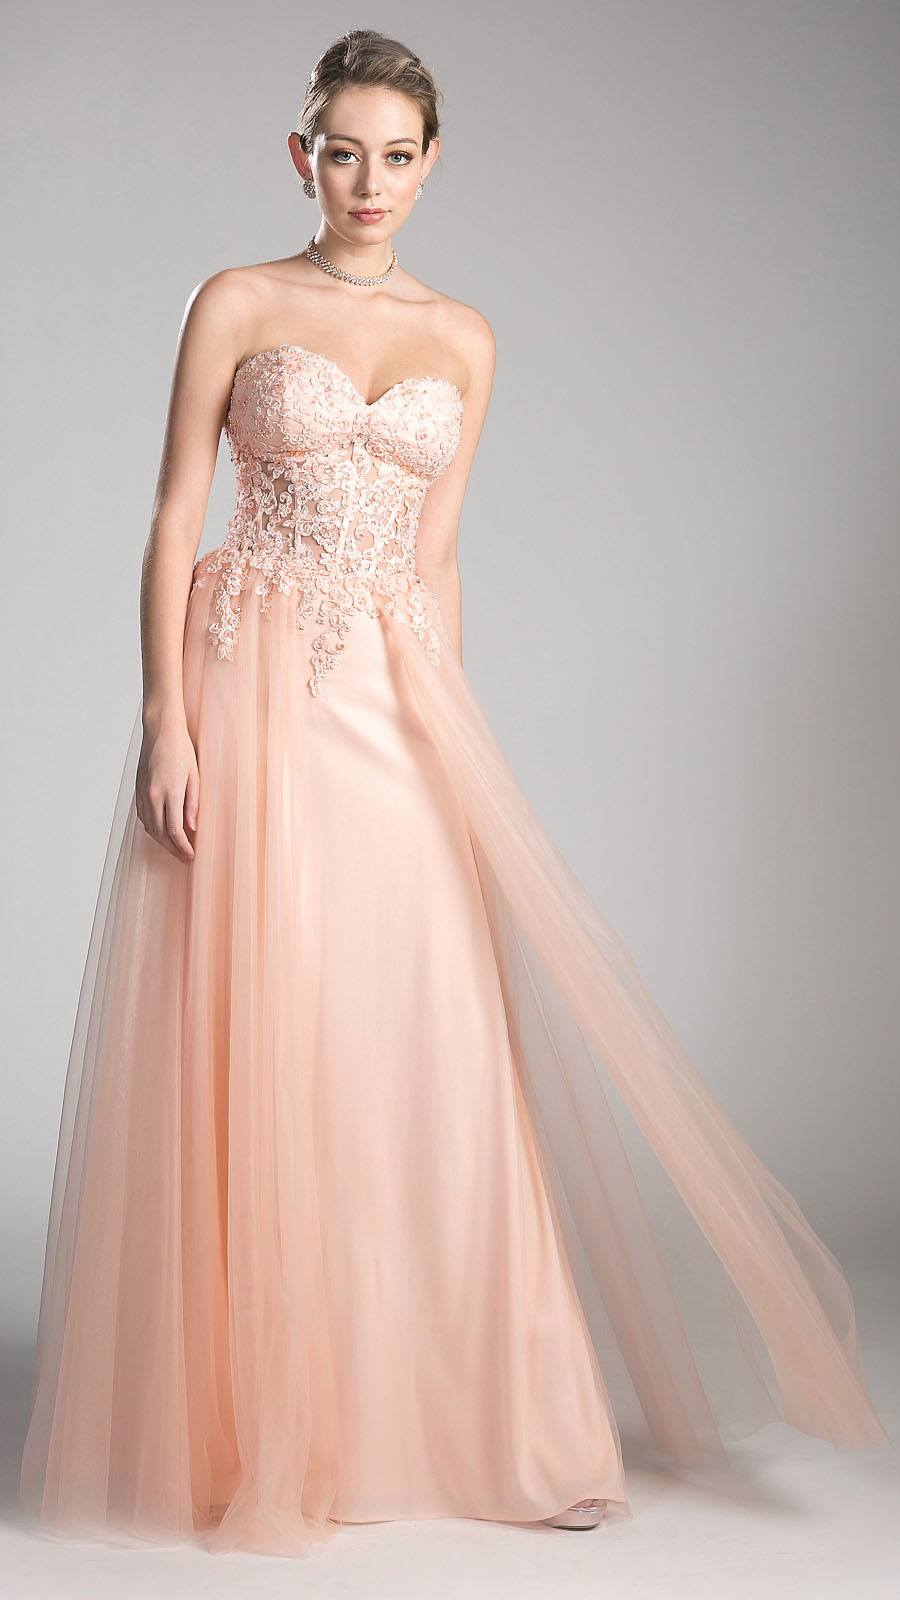 5f54acb0d4c Blush Sweetheart Neck Long Formal Dress Appliqued Bodice. Tap to expand